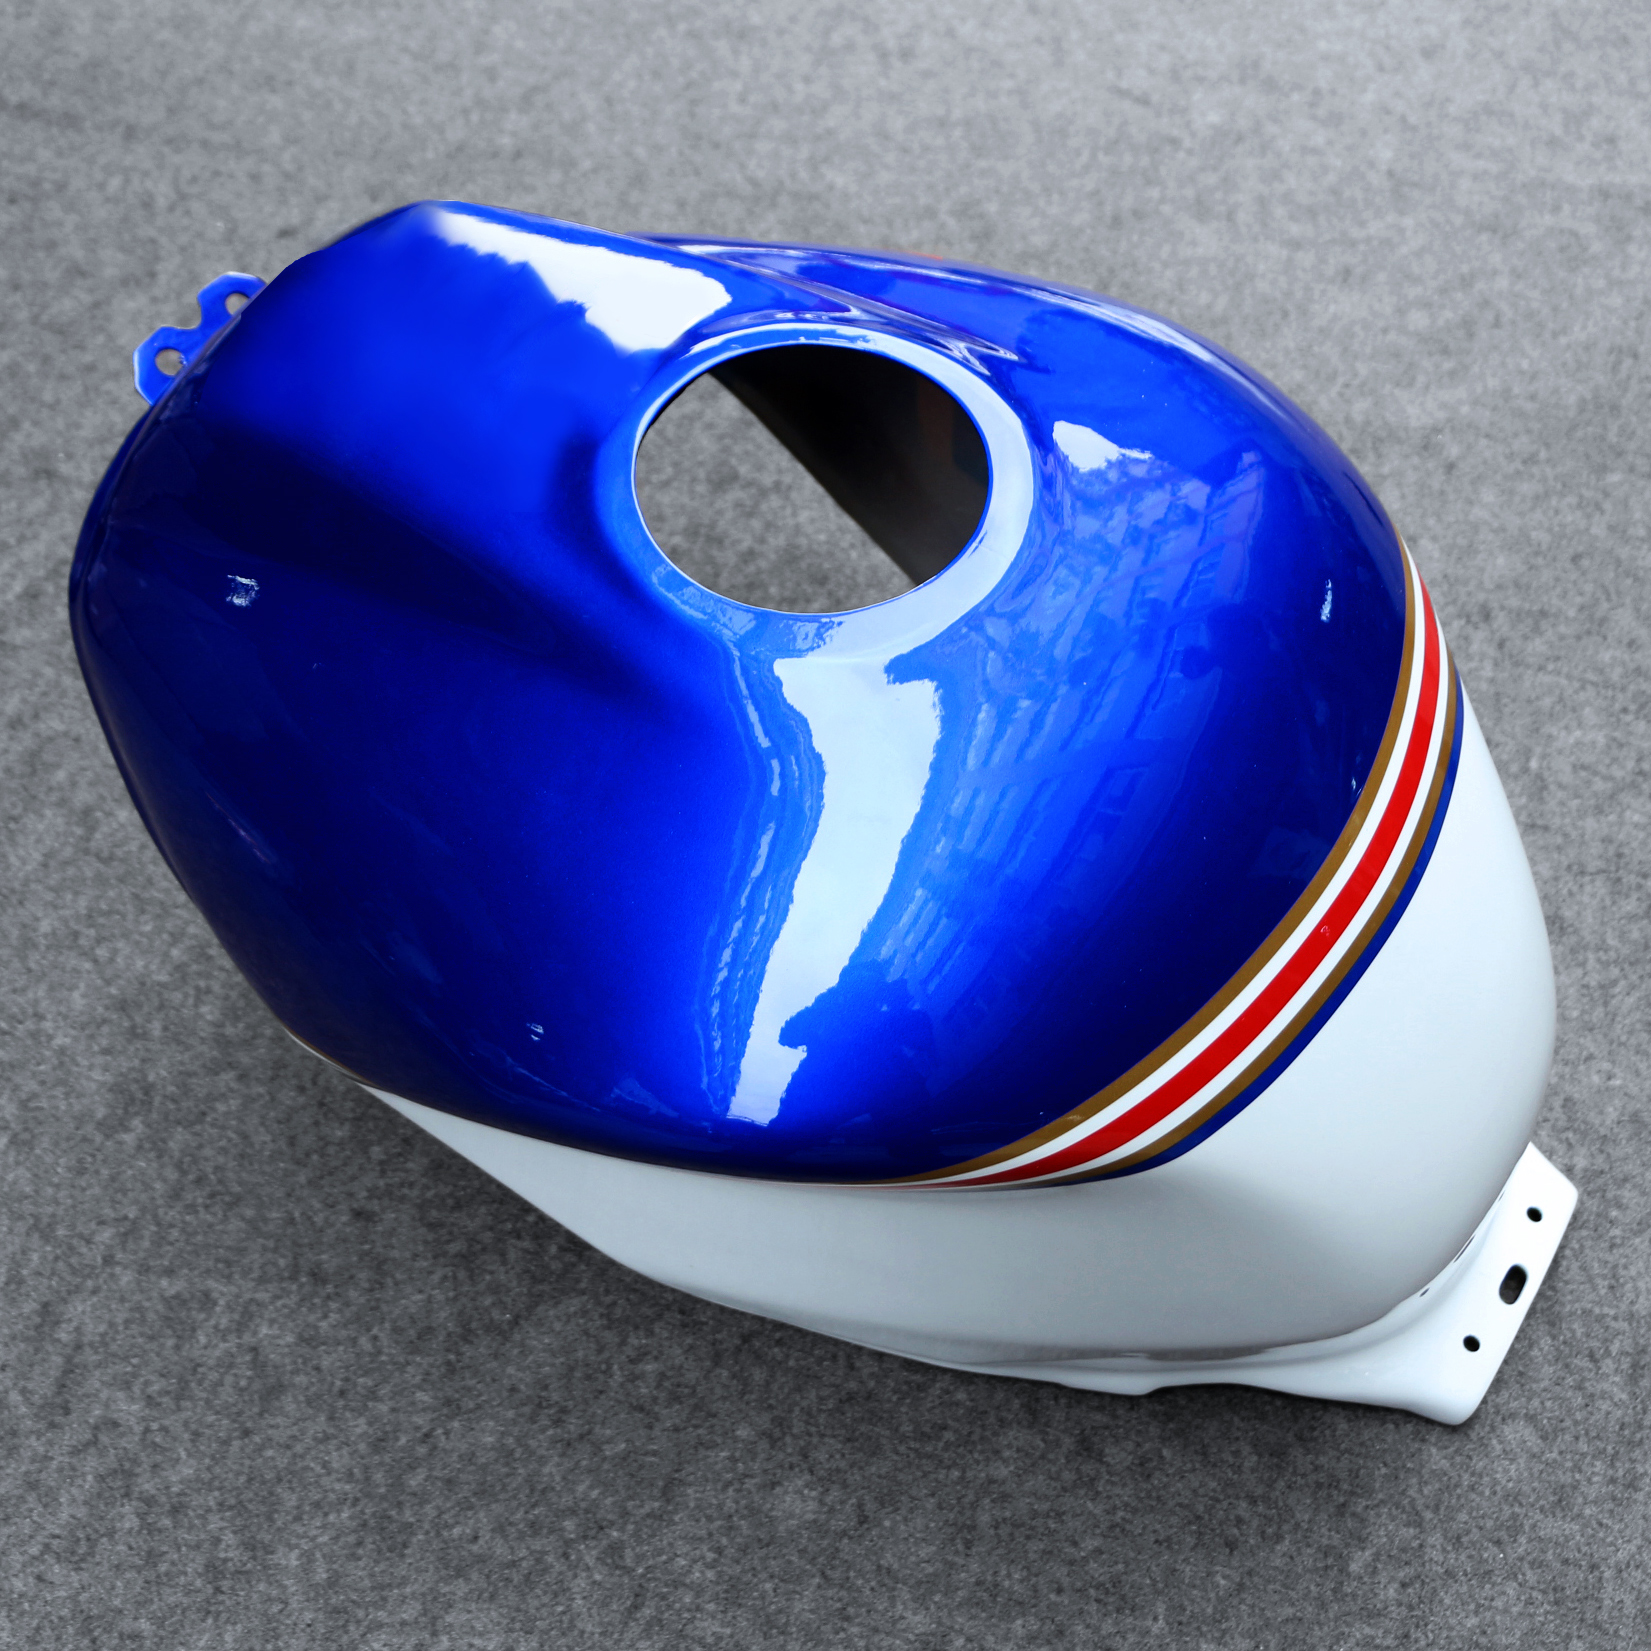 1 Piece Motorcycle Vintage Fuel Gas Petrol Tank Fairing Shell Cowl Shelter